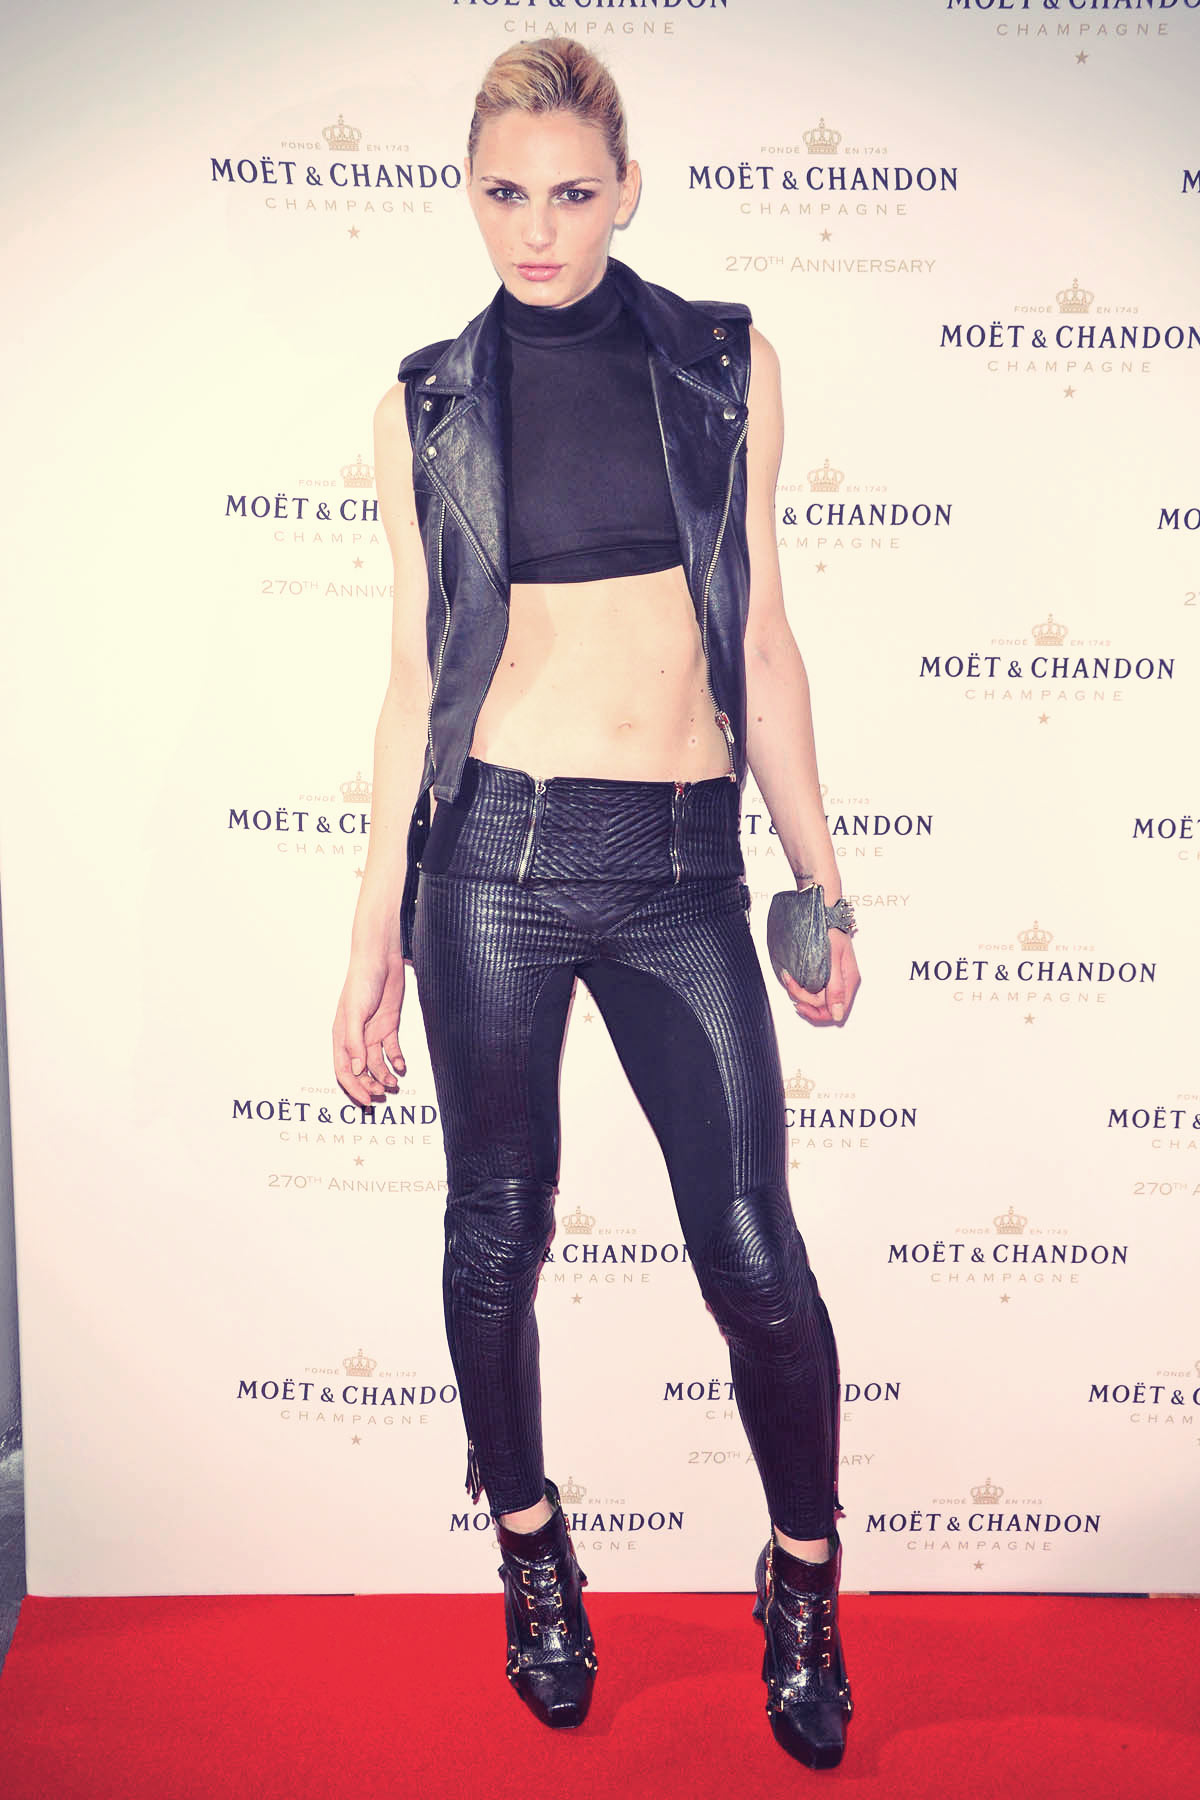 Andrej Pejic attends The Moet & Chandon 270th Anniversary